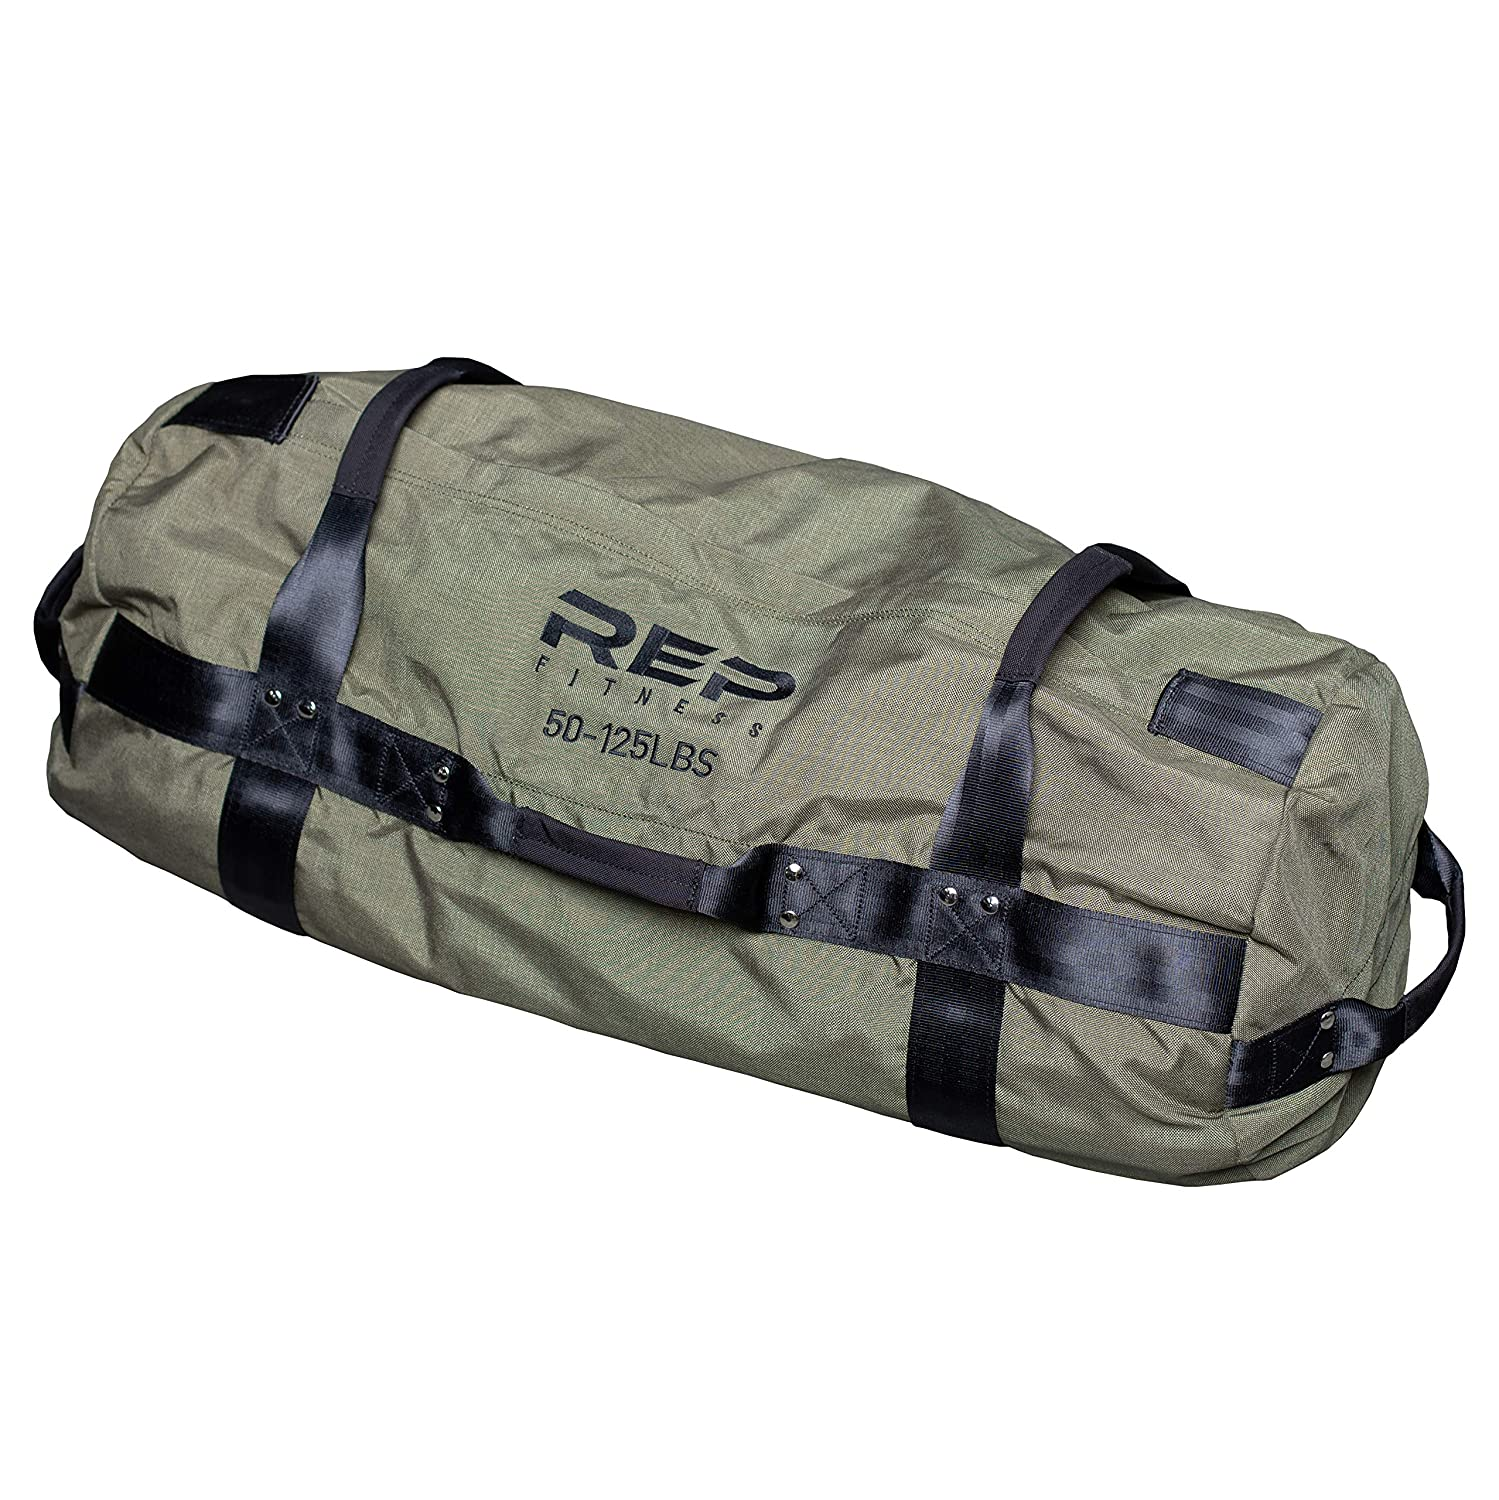 Rep Fitness Sandbags - Heavy Duty Workout Sandbags for Training,  Cross-Training Workouts, Fitness, Exercise and Military Conditioning -  Multiple Sizes